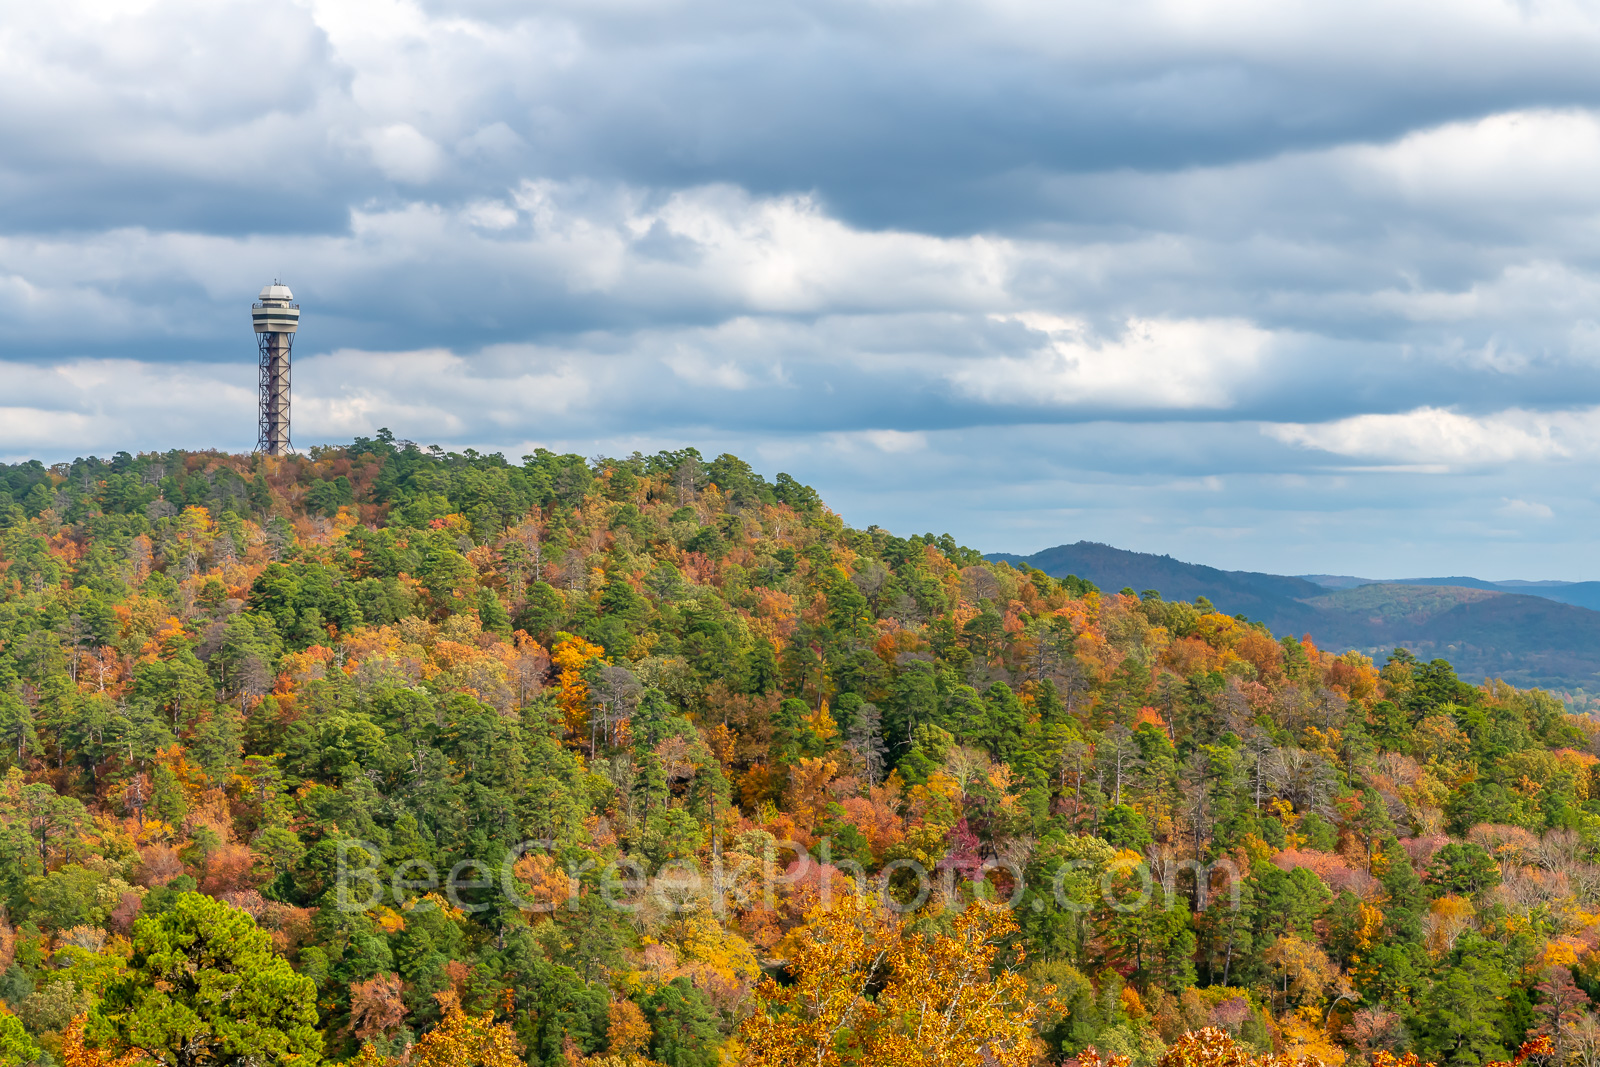 all, tower mountain, colors, Hot Spring, Arkansas, National Forest, hill side, moody, skies, everygreen, pines, orange, pink, sugar maples, red maples, yellow, black hickory, sweet gym,, photo